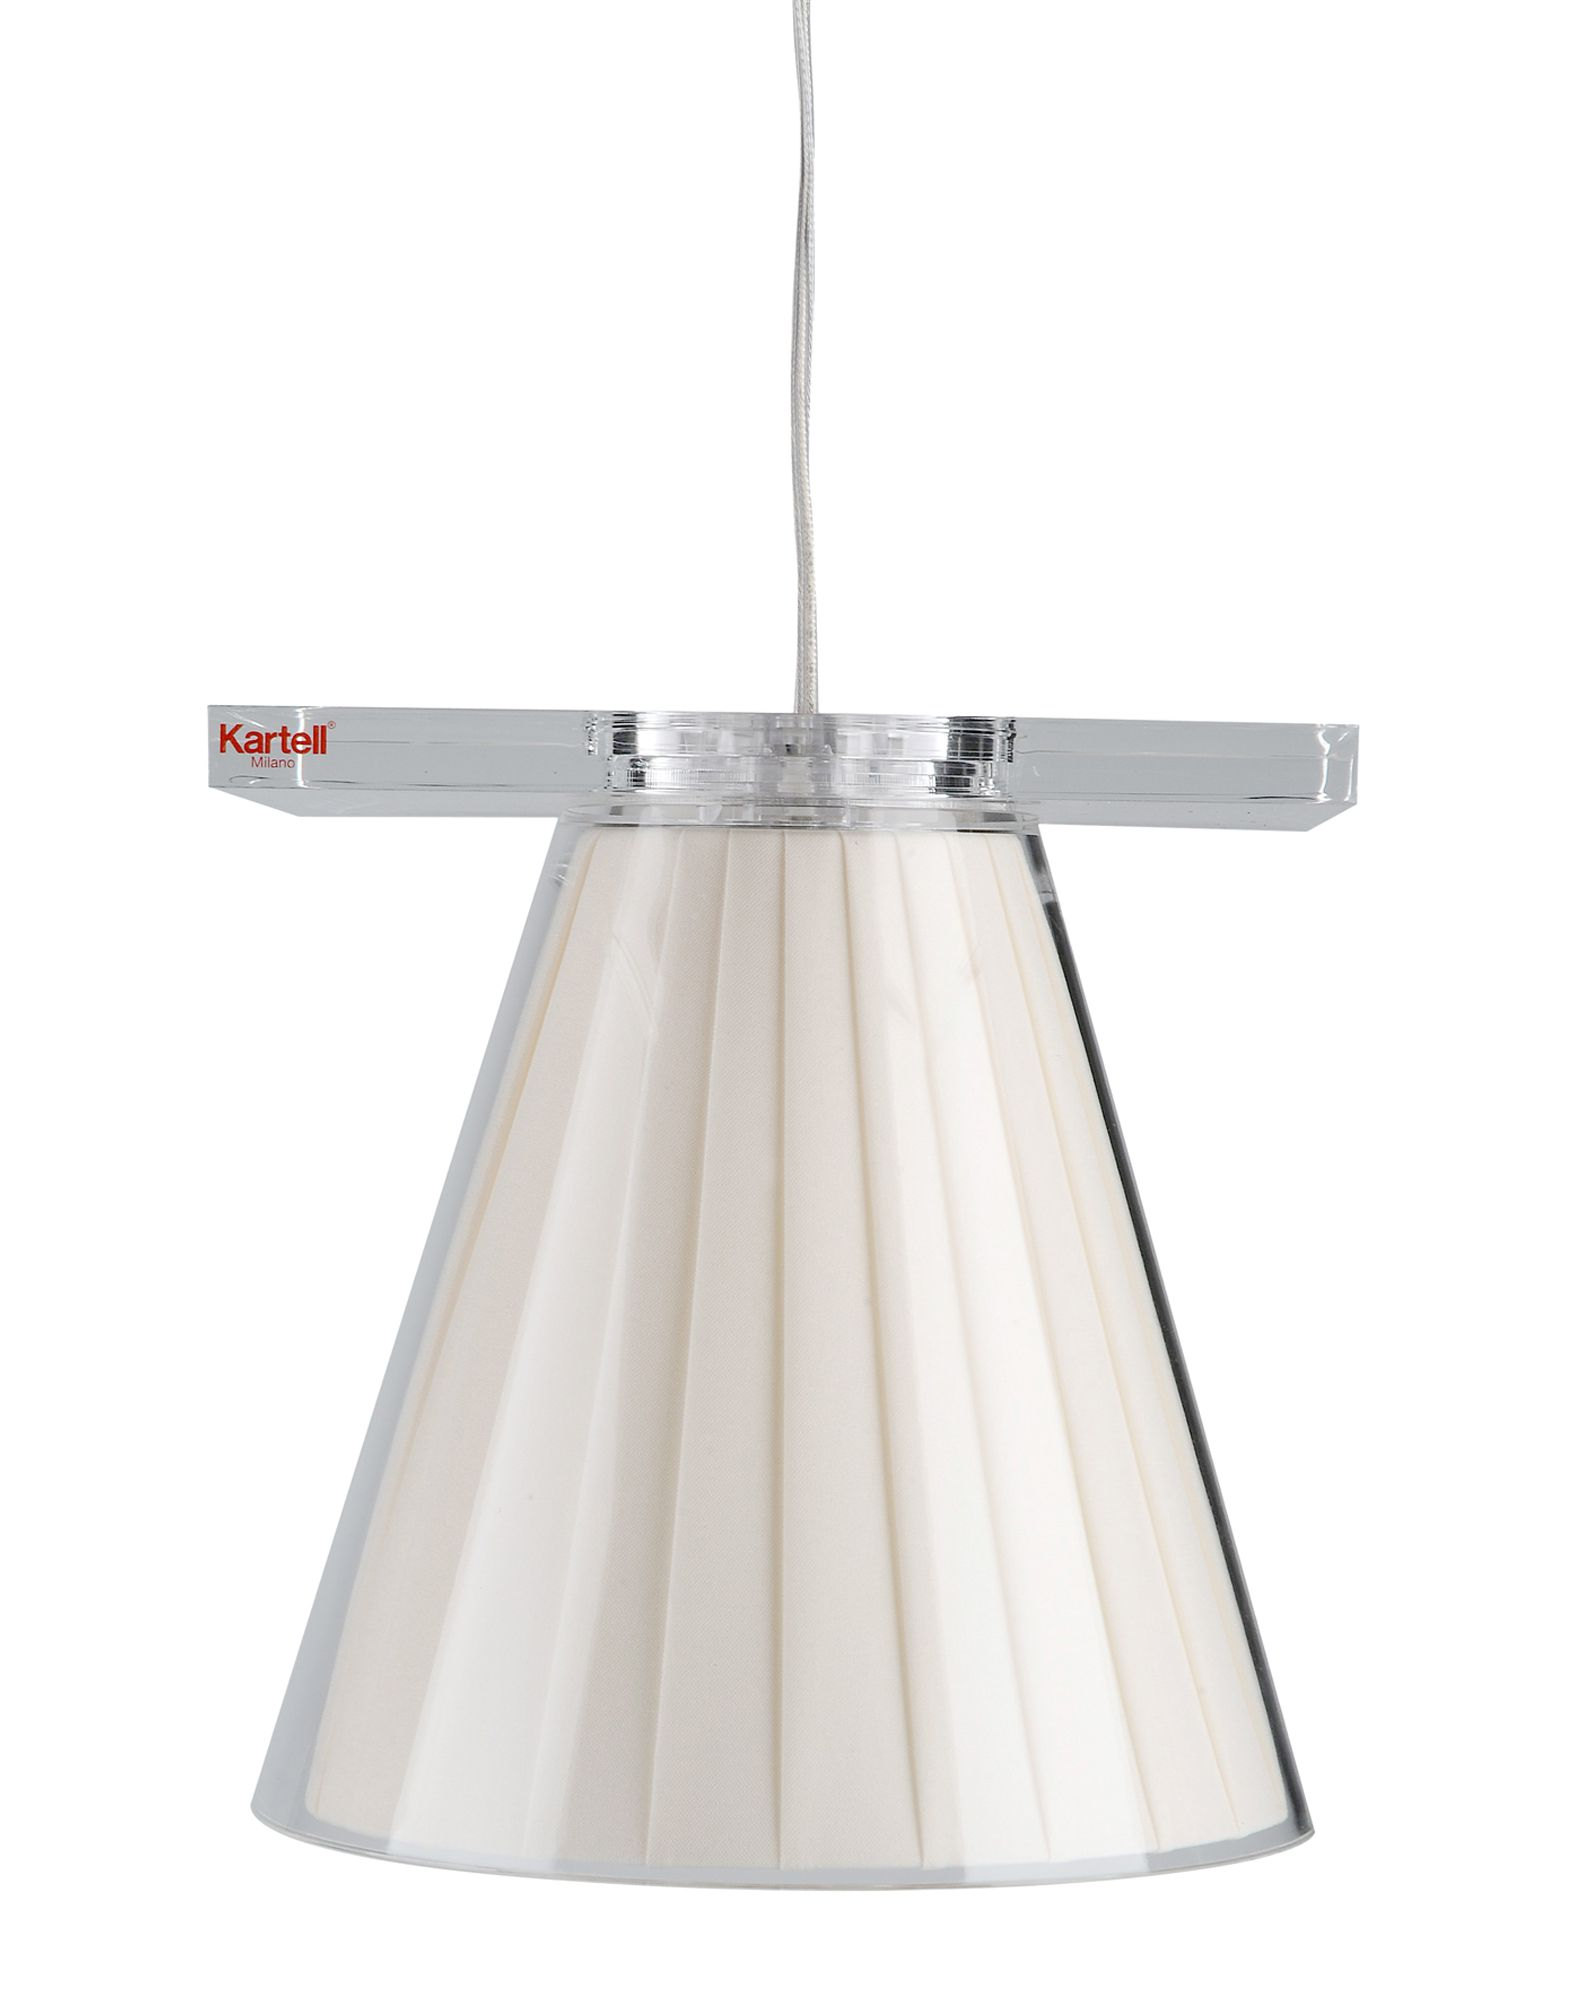 Lamp Kartell Kartell Suspension Lamp Lighting Yoox Com